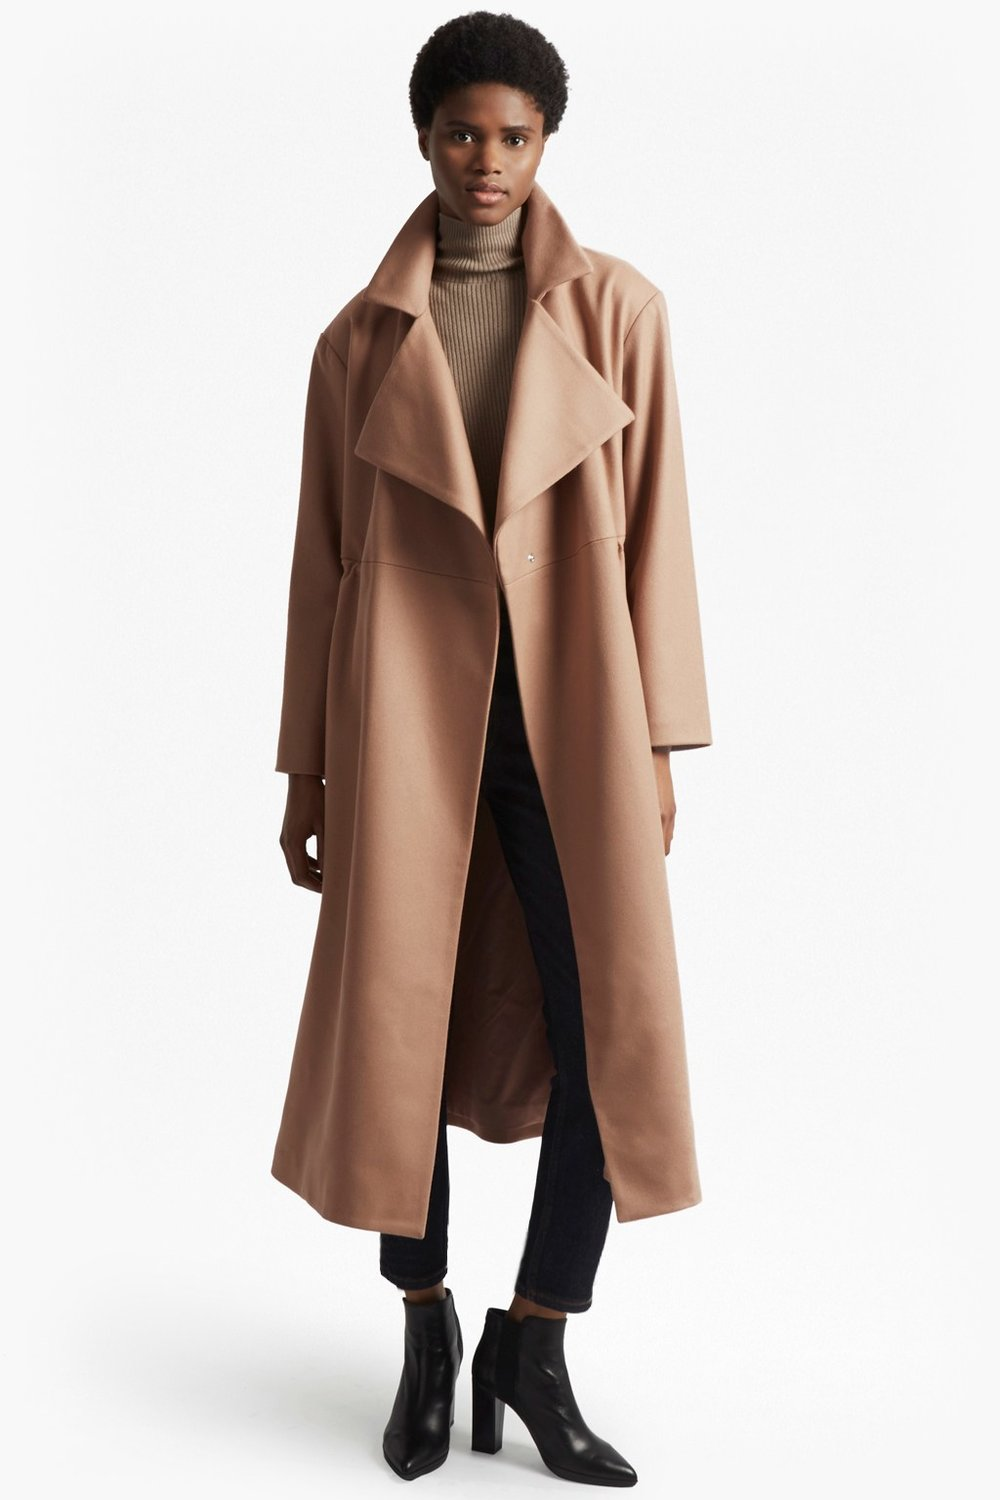 Platform Felt Coat, French Connection, £230